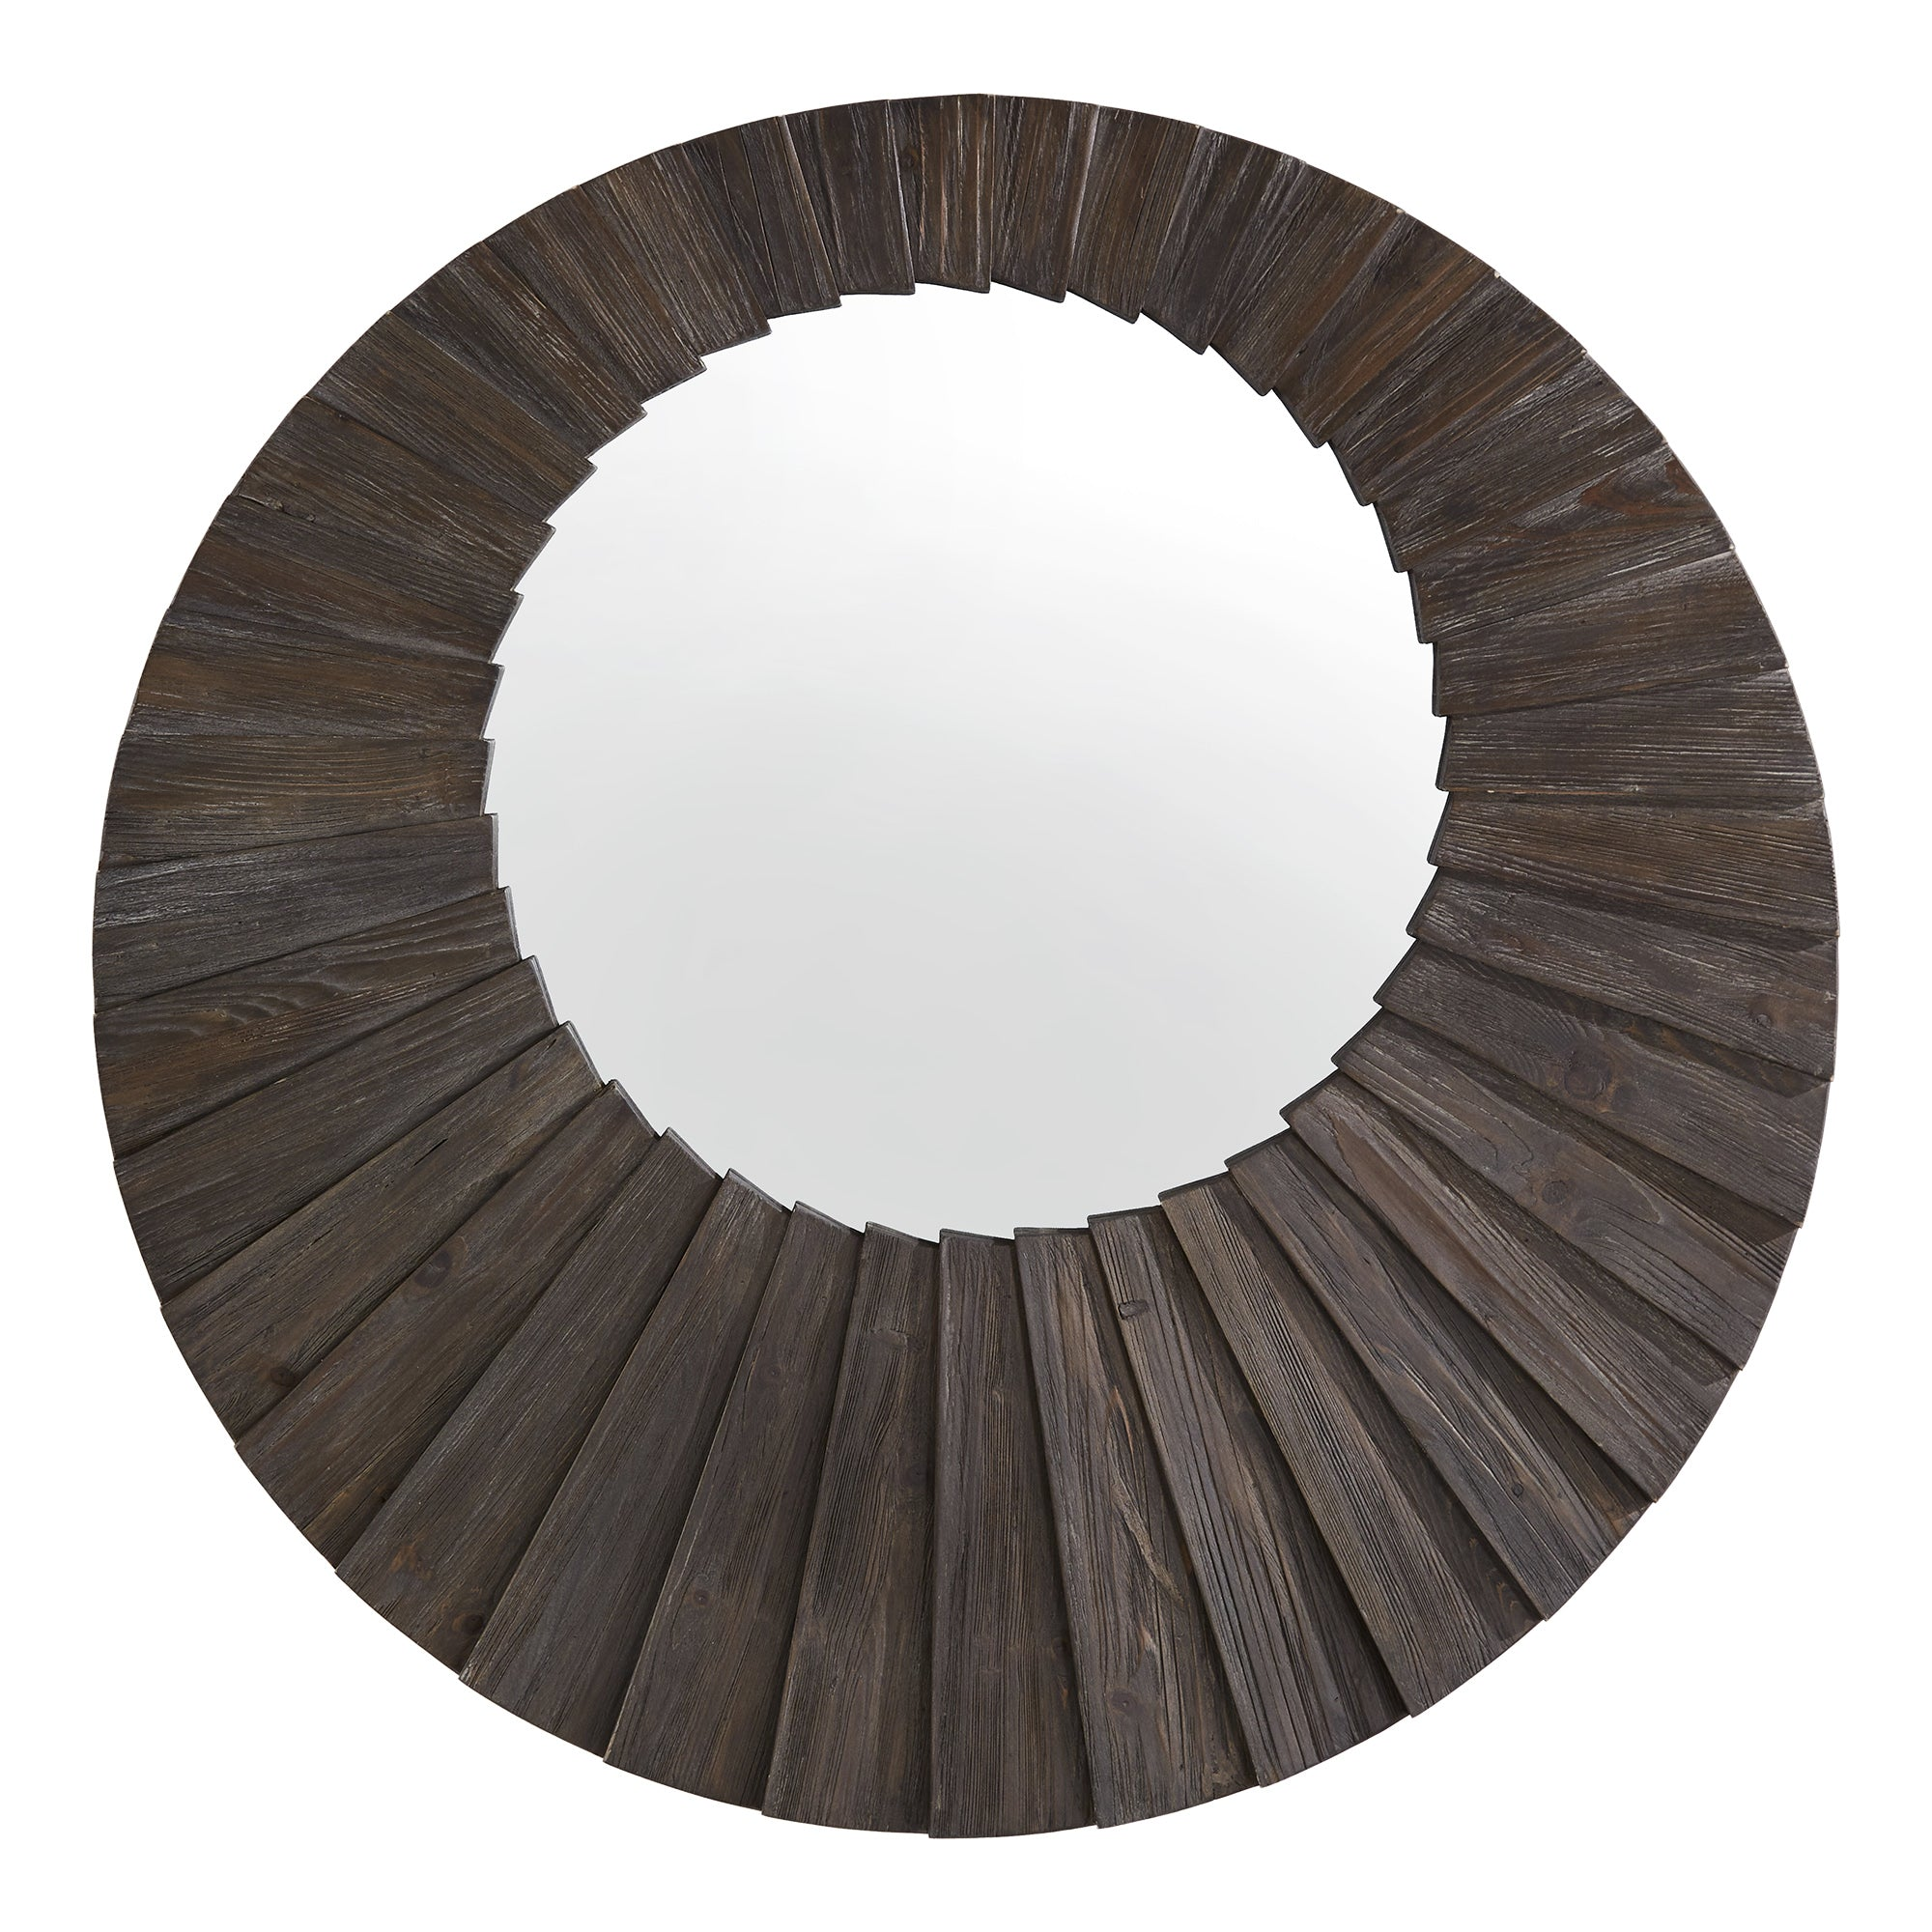 Dark Brown Reclaimed Wood Round Seashell Wall Mirror - Large